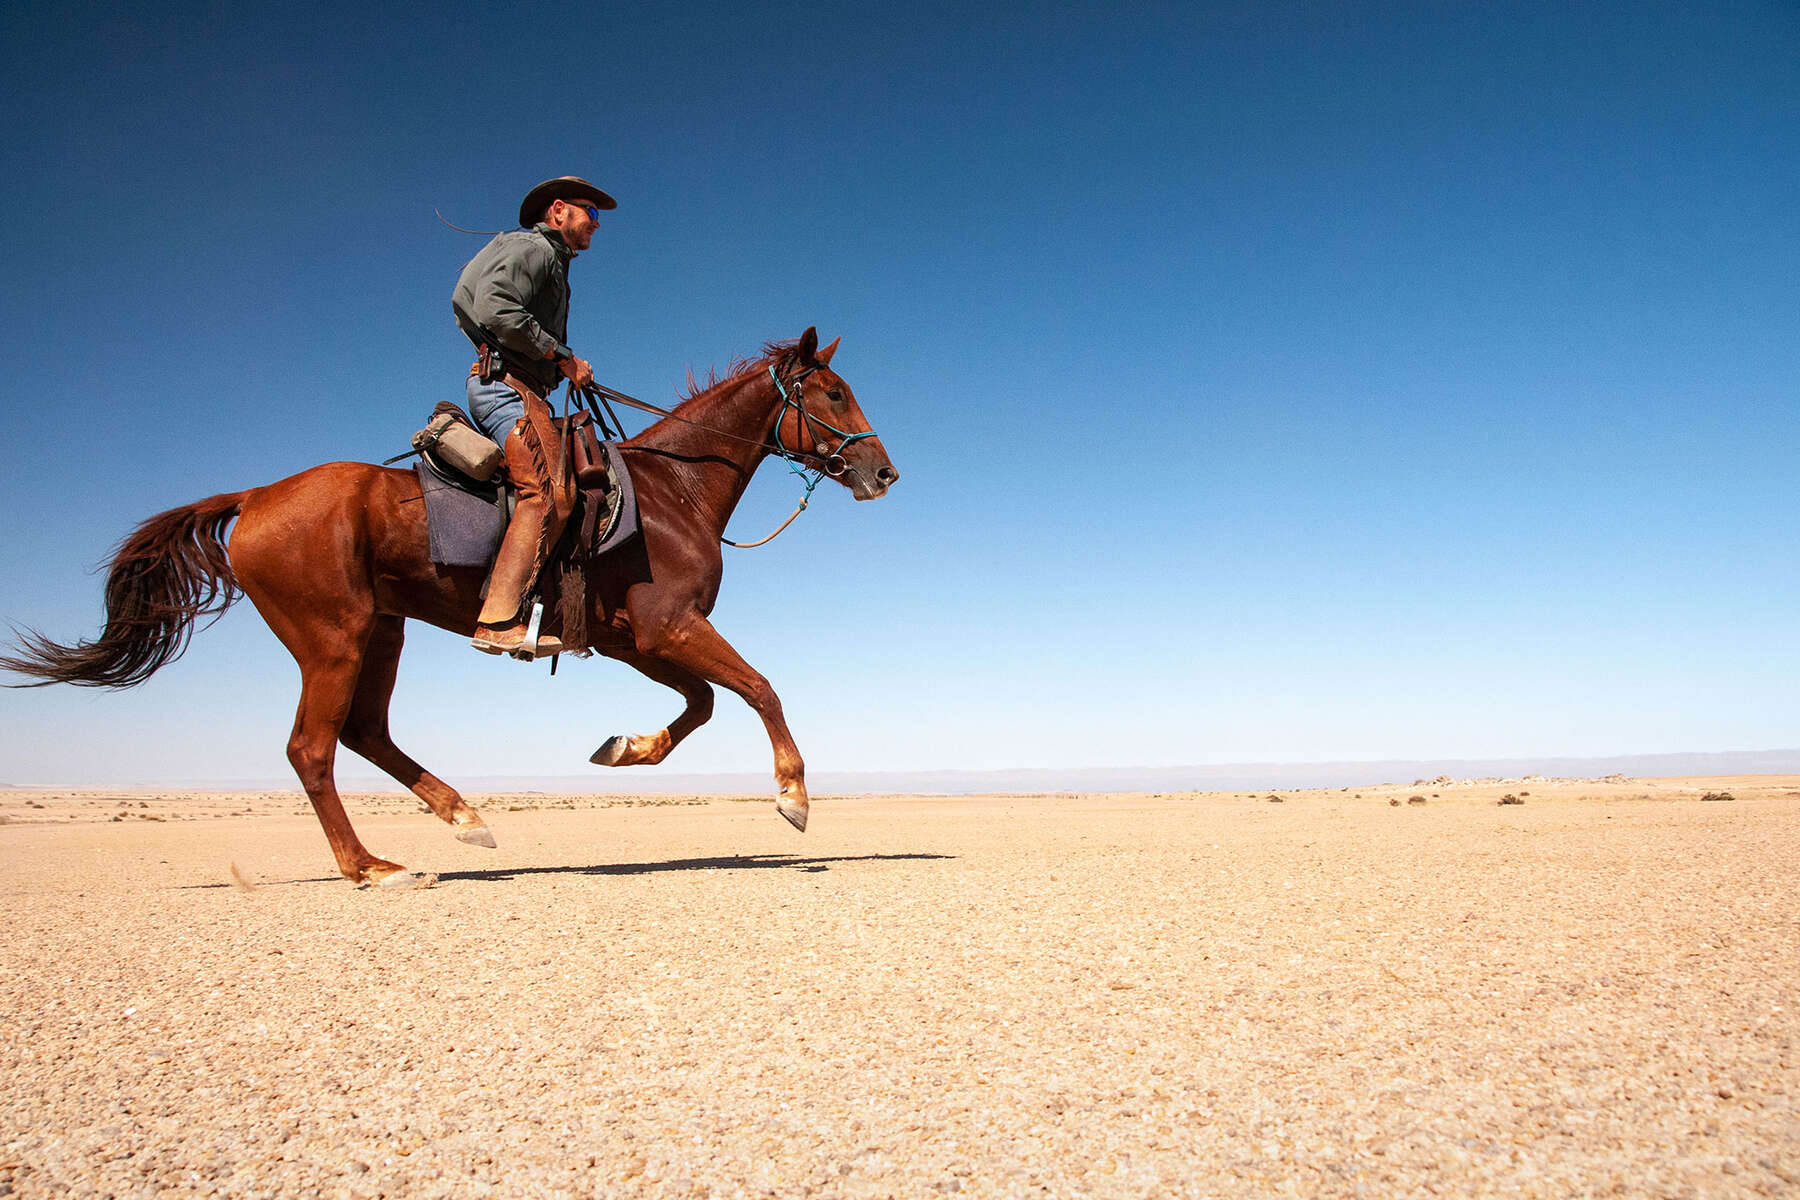 Andrew Gillies riding a horse in the Namib desert